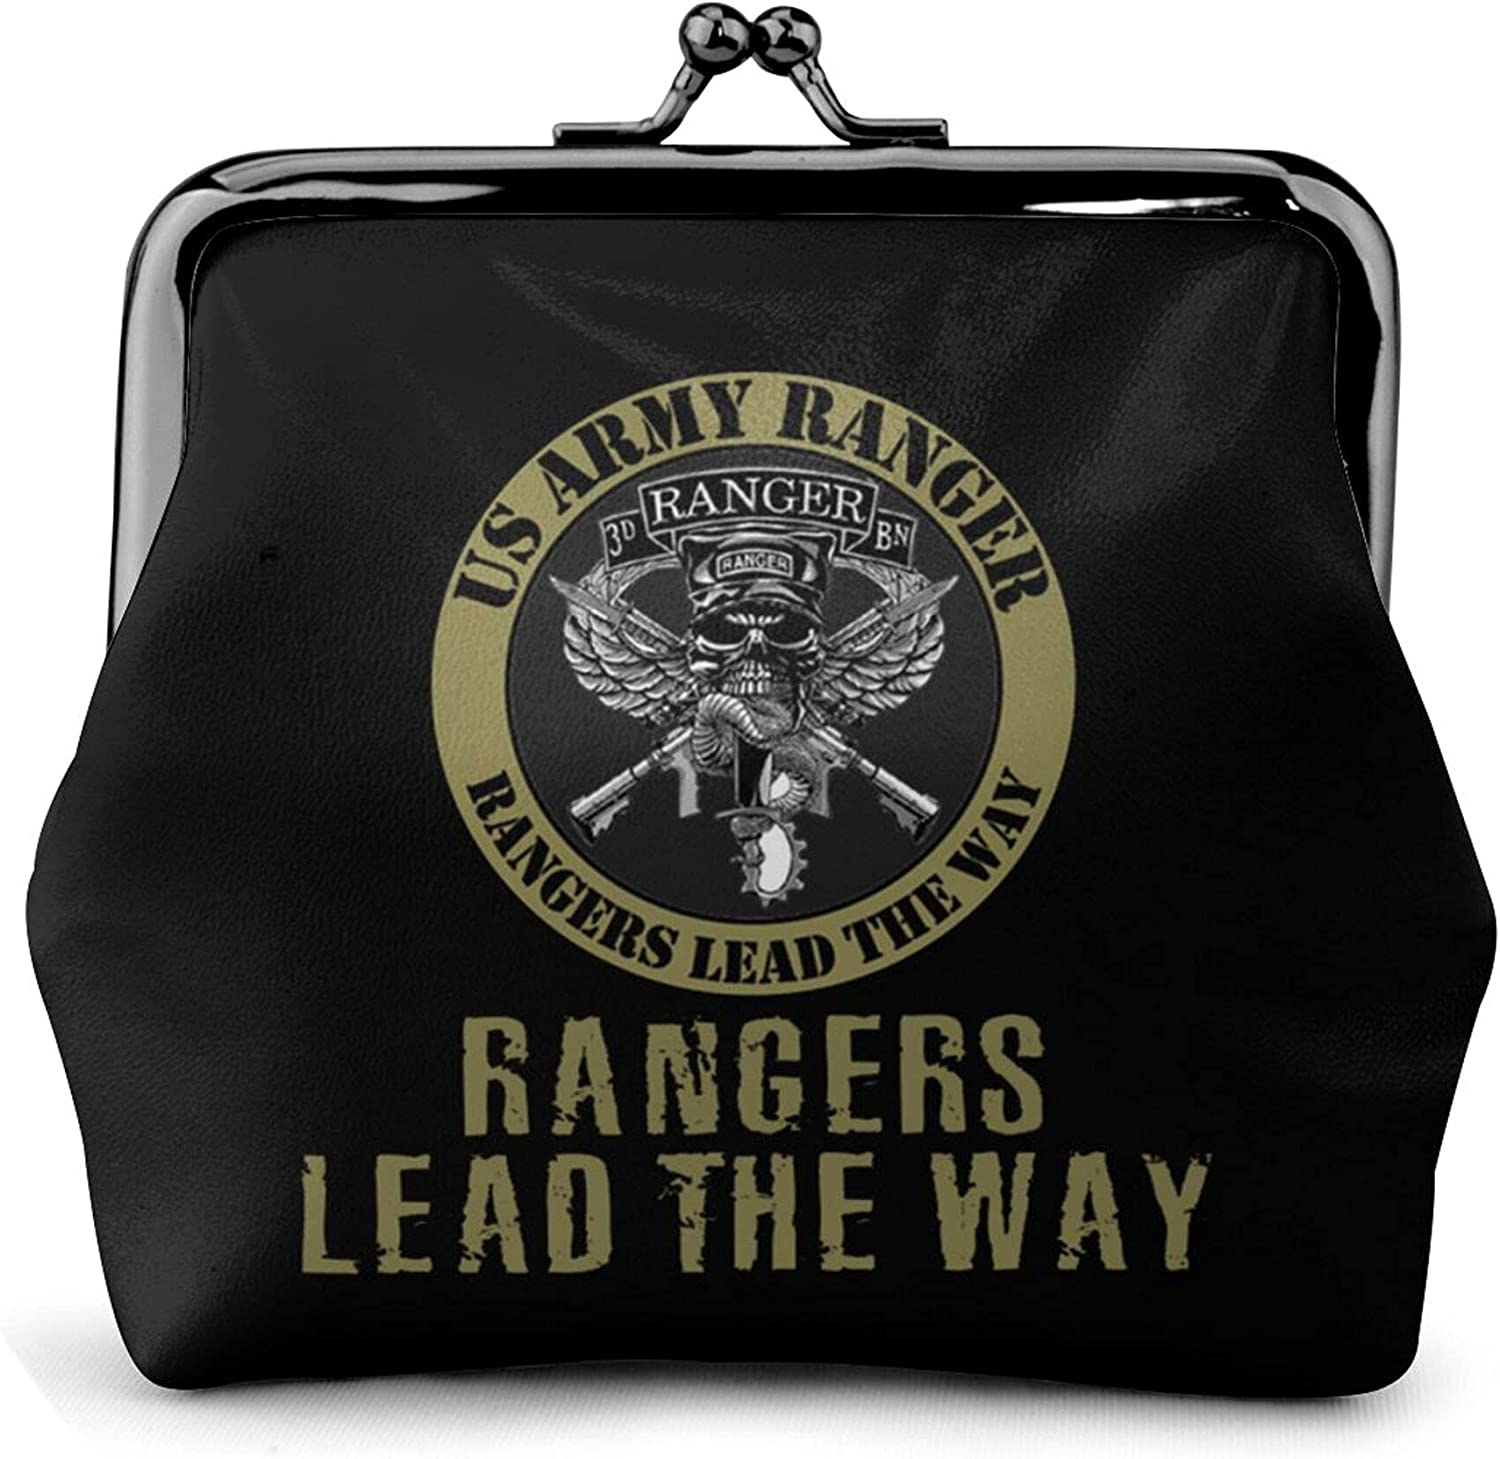 Us Army Ranger Lead The Way Leather Squeeze Coin Purse Pouch Change Holder For Men & Women